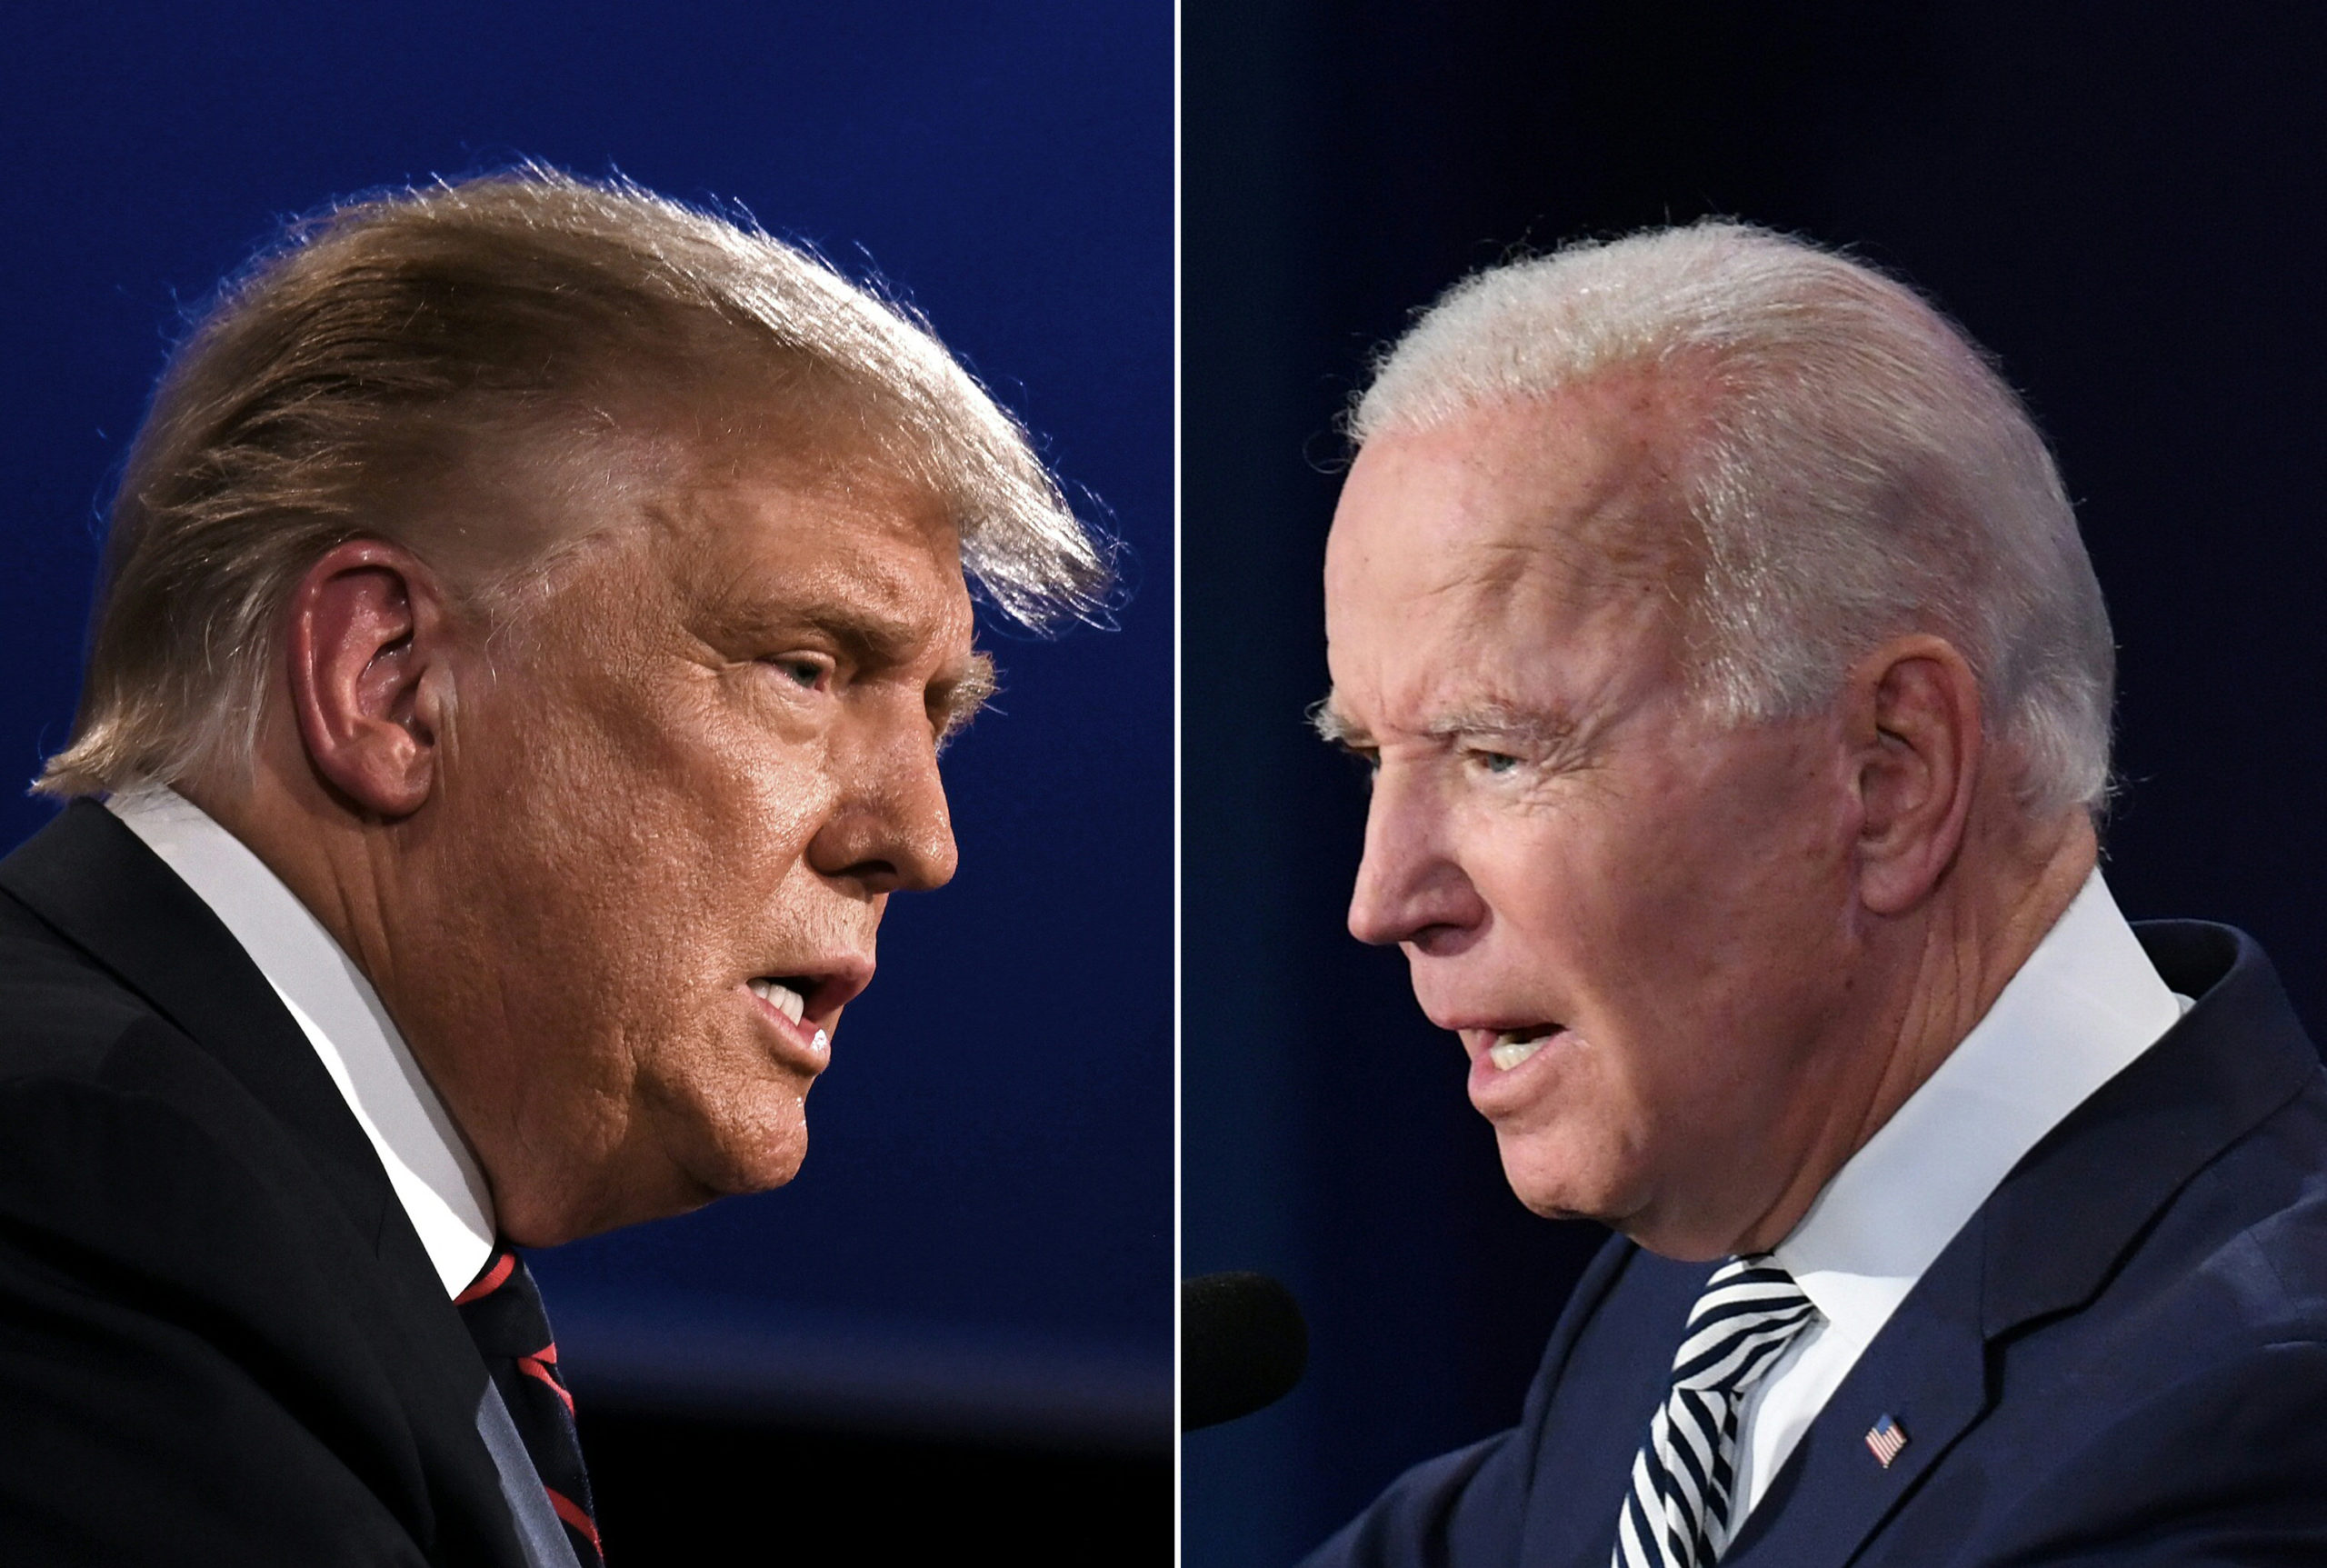 This combination of pictures created on September 29, 2020 shows US President Donald Trump (L) and Democratic Presidential candidate former Vice President Joe Biden squaring off during the first presidential debate at the Case Western Reserve University and Cleveland Clinic in Cleveland, Ohio on September 29, 2020. (Photo by JIM WATSON,SAUL LOEB/AFP via Getty Images)